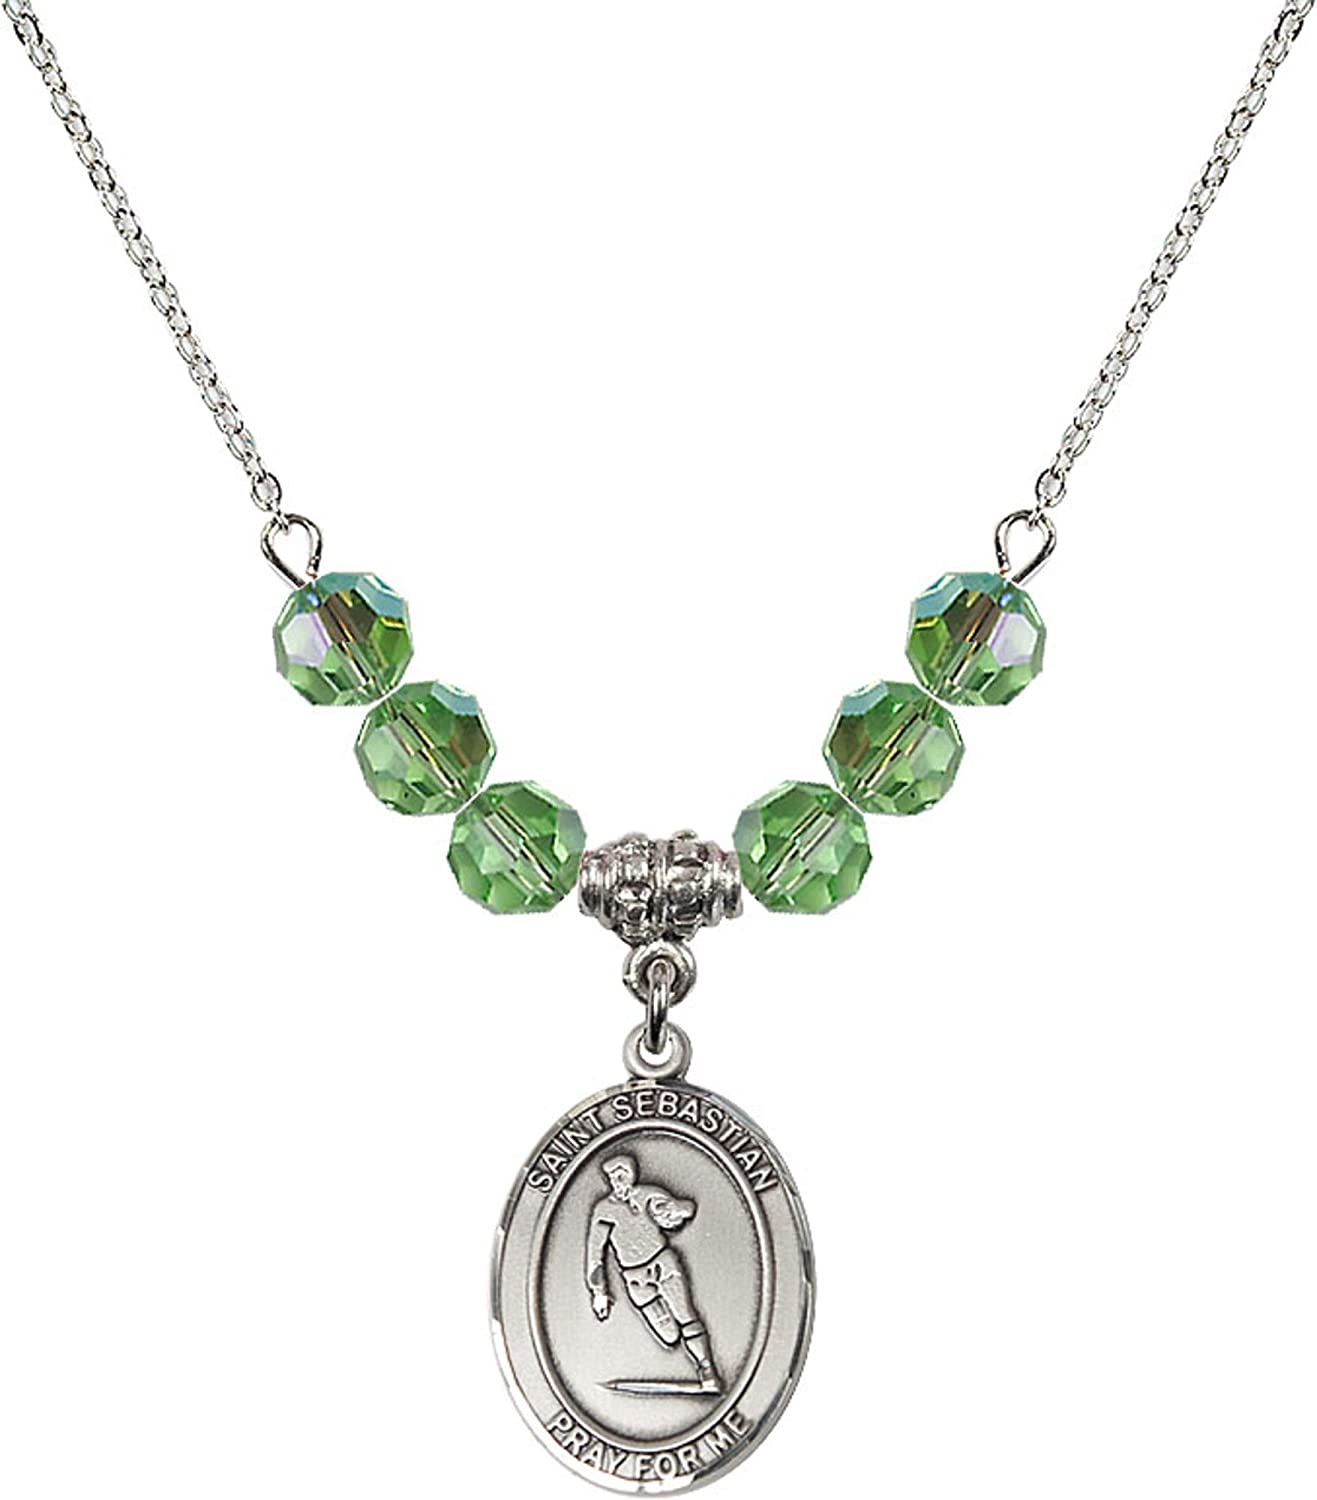 Bonyak Jewelry 18 Inch Rhodium Plated Necklace w// 6mm Green August Birth Month Stone Beads and Saint Sebastian//Rugby Charm